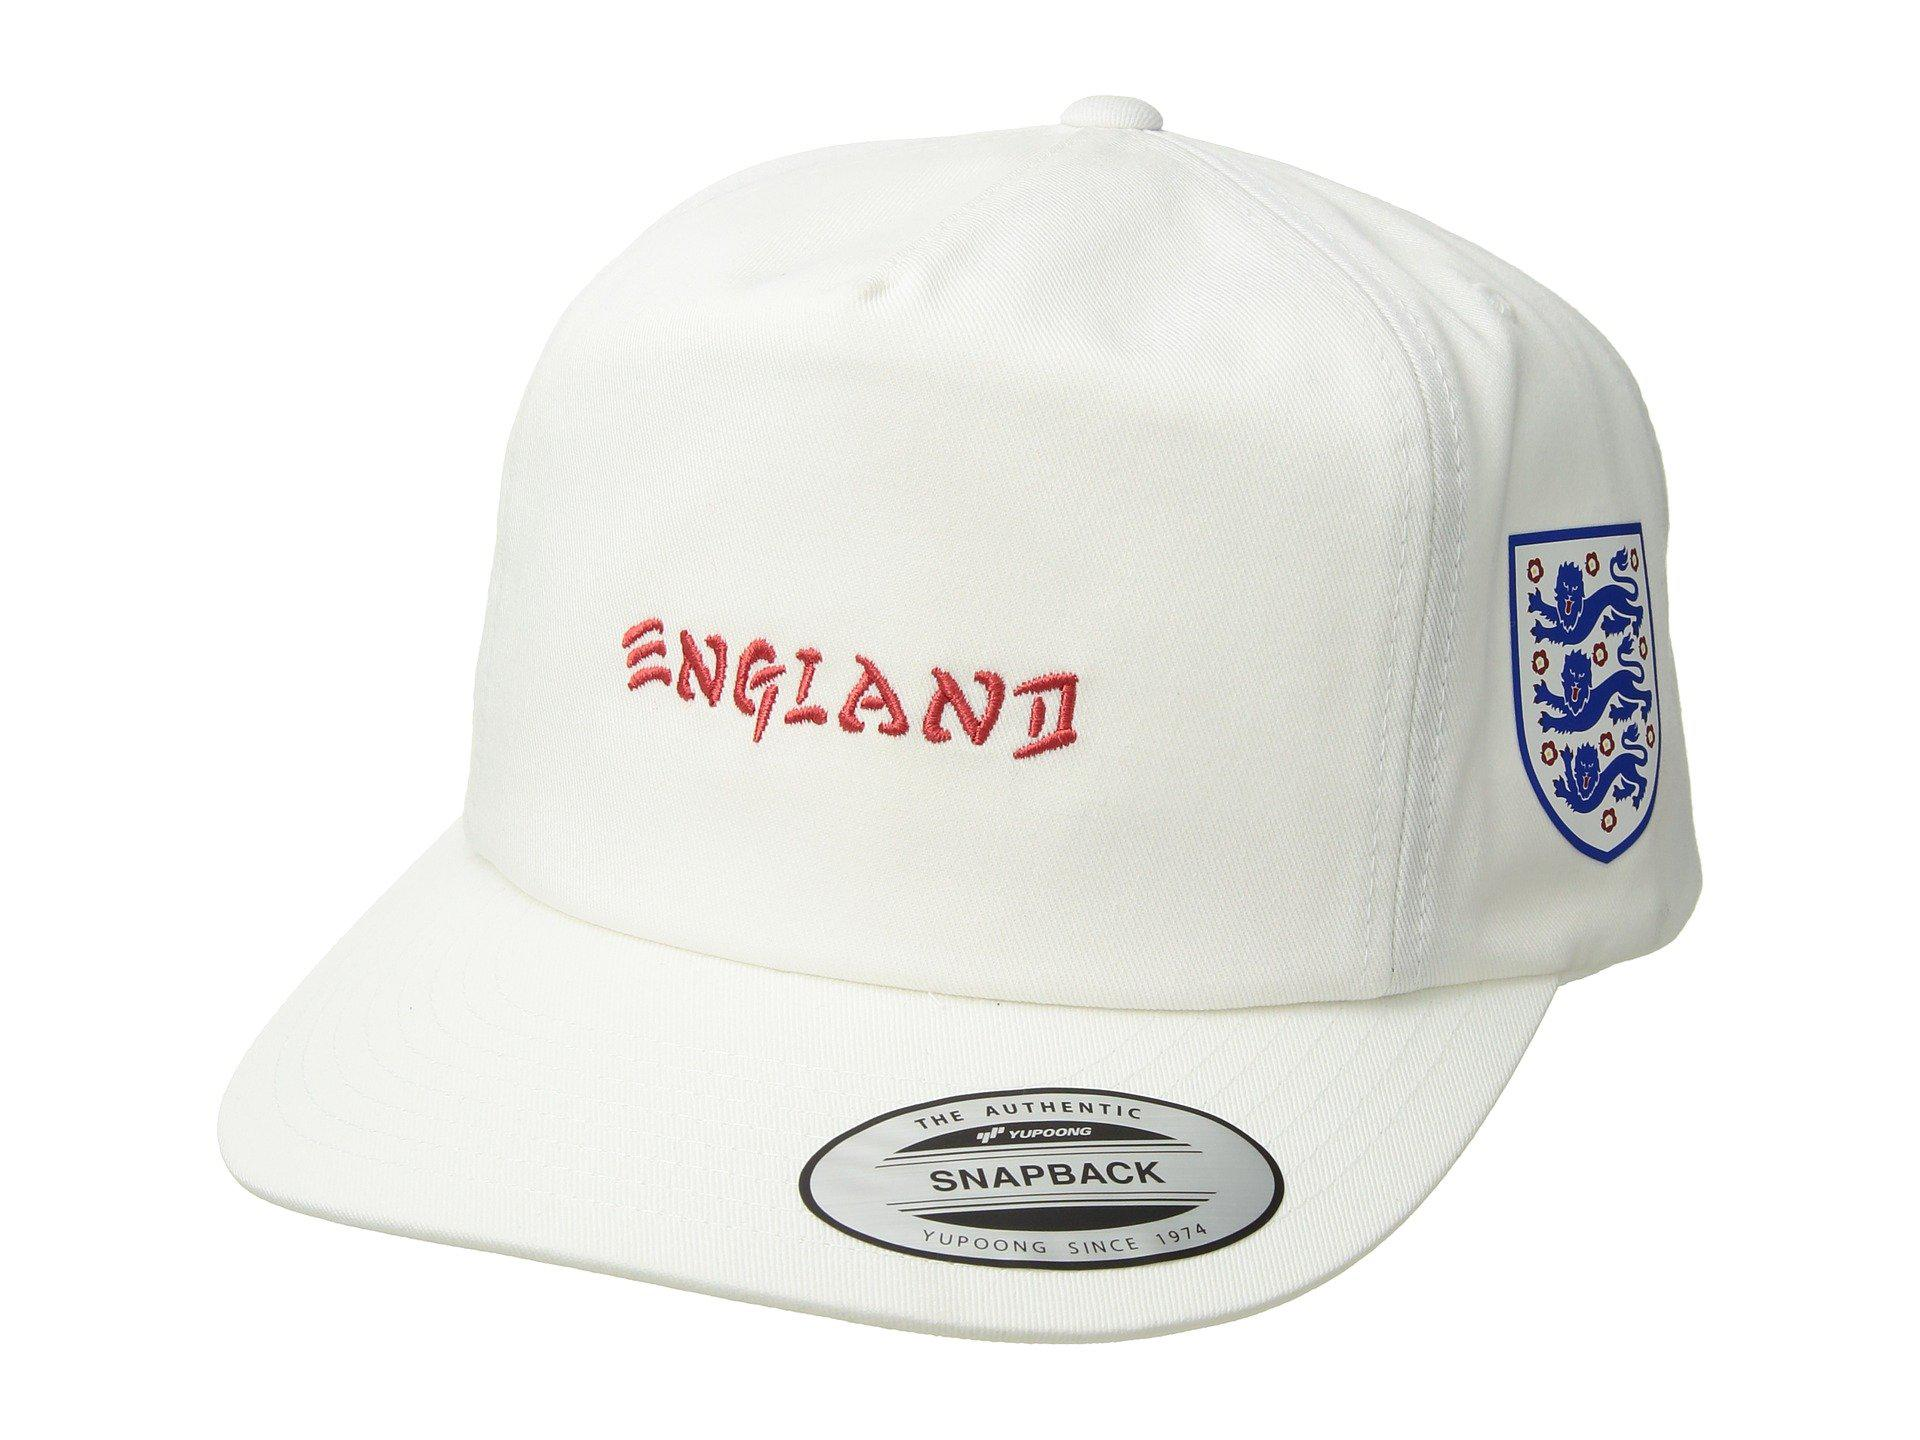 1339b8a69ab4b5 ... cheapest lyst hurley england national team hat white caps in white for  men 3b76e 97641